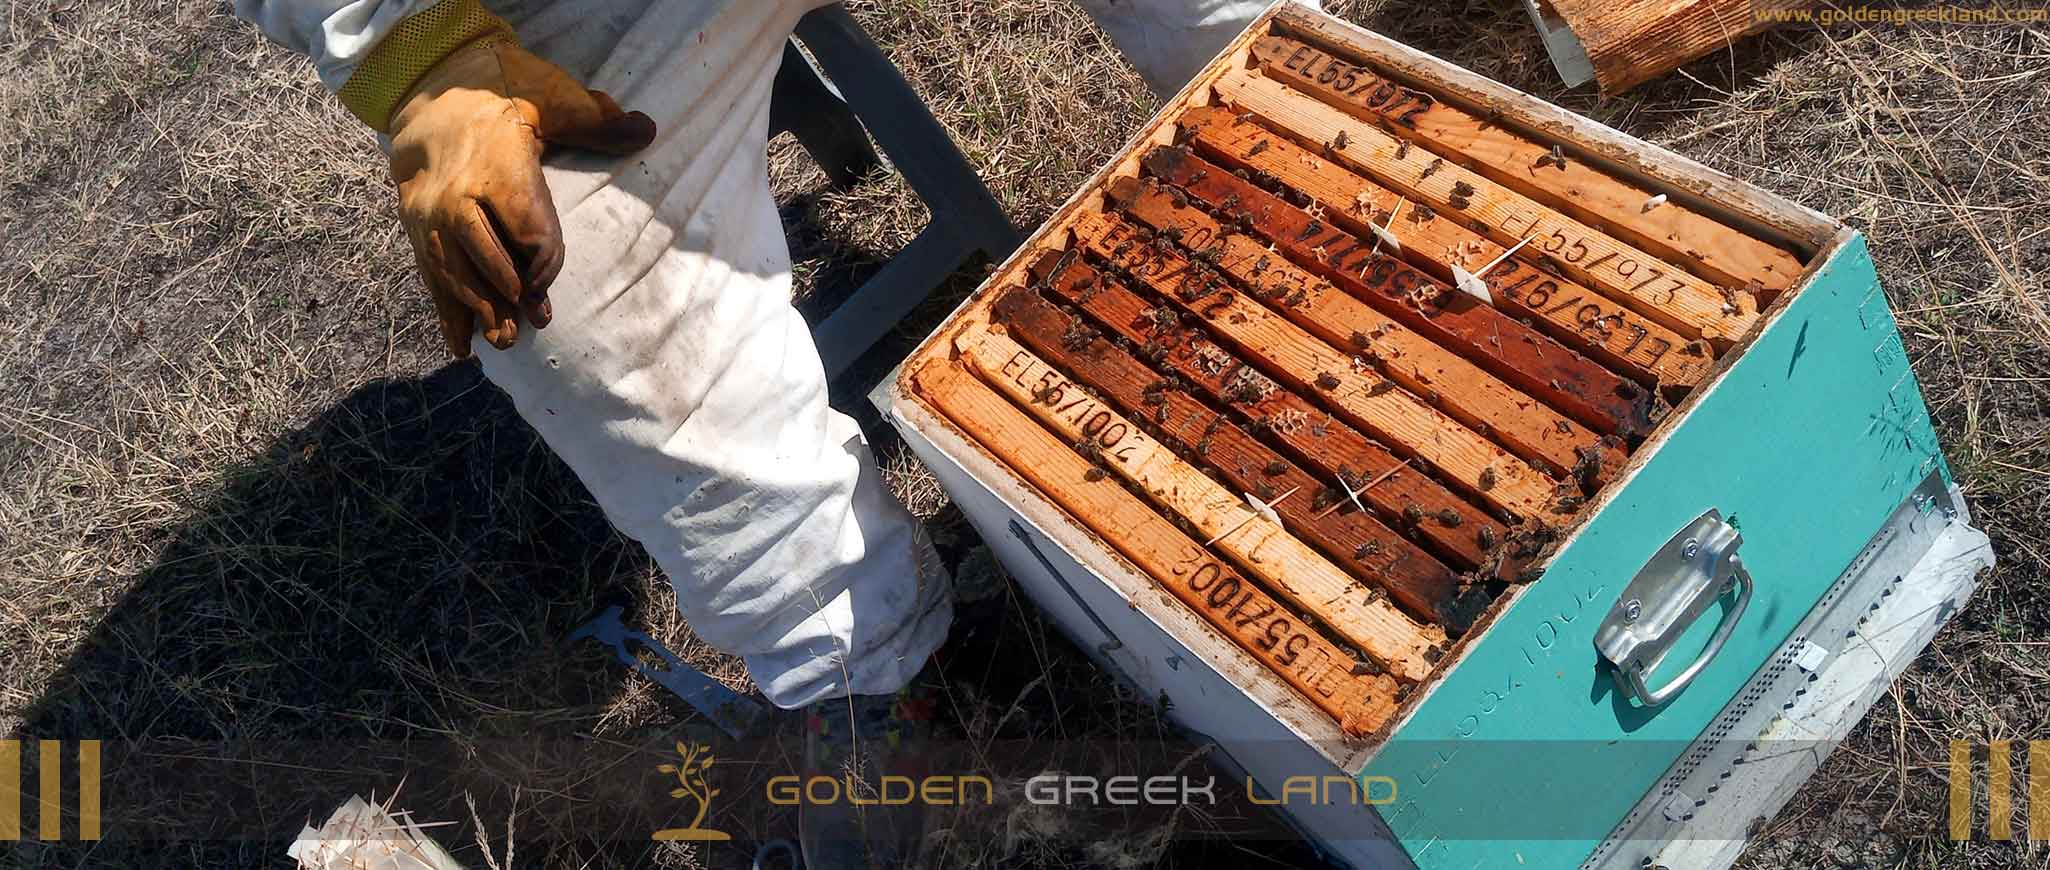 Golden honey - The beekeeper and the bees in the honeycomb.